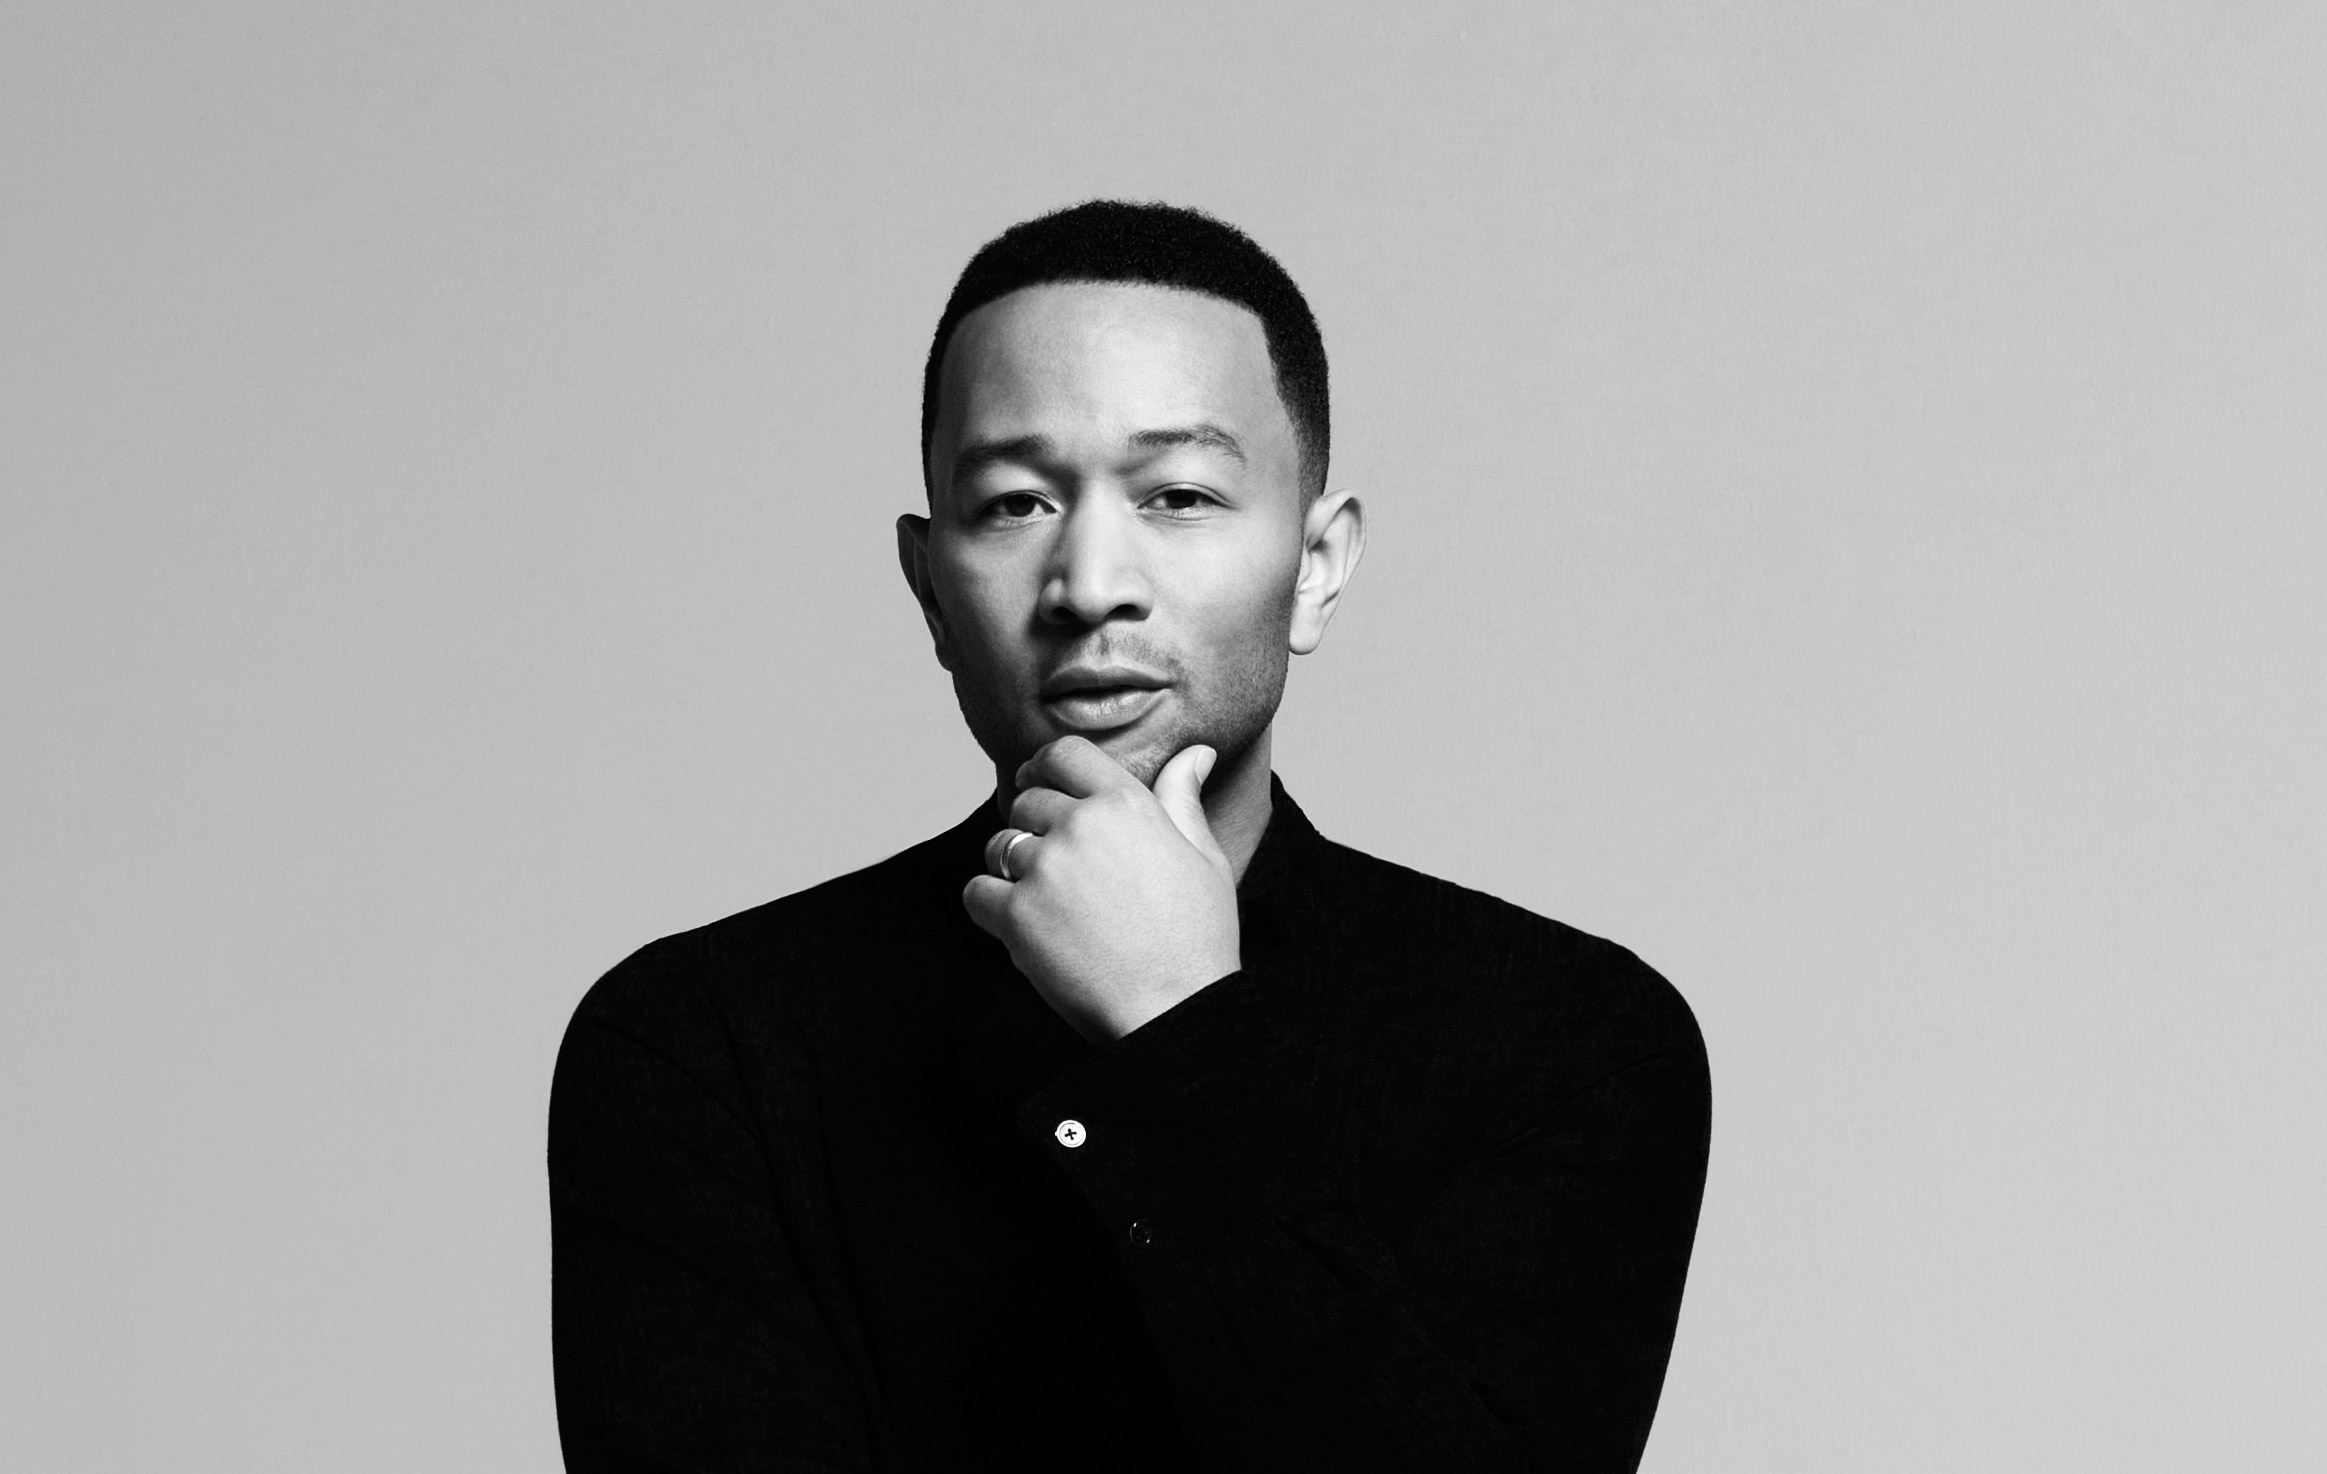 John Legend Releases His First Single Of 2019 And It's Powerful [VIDEO]